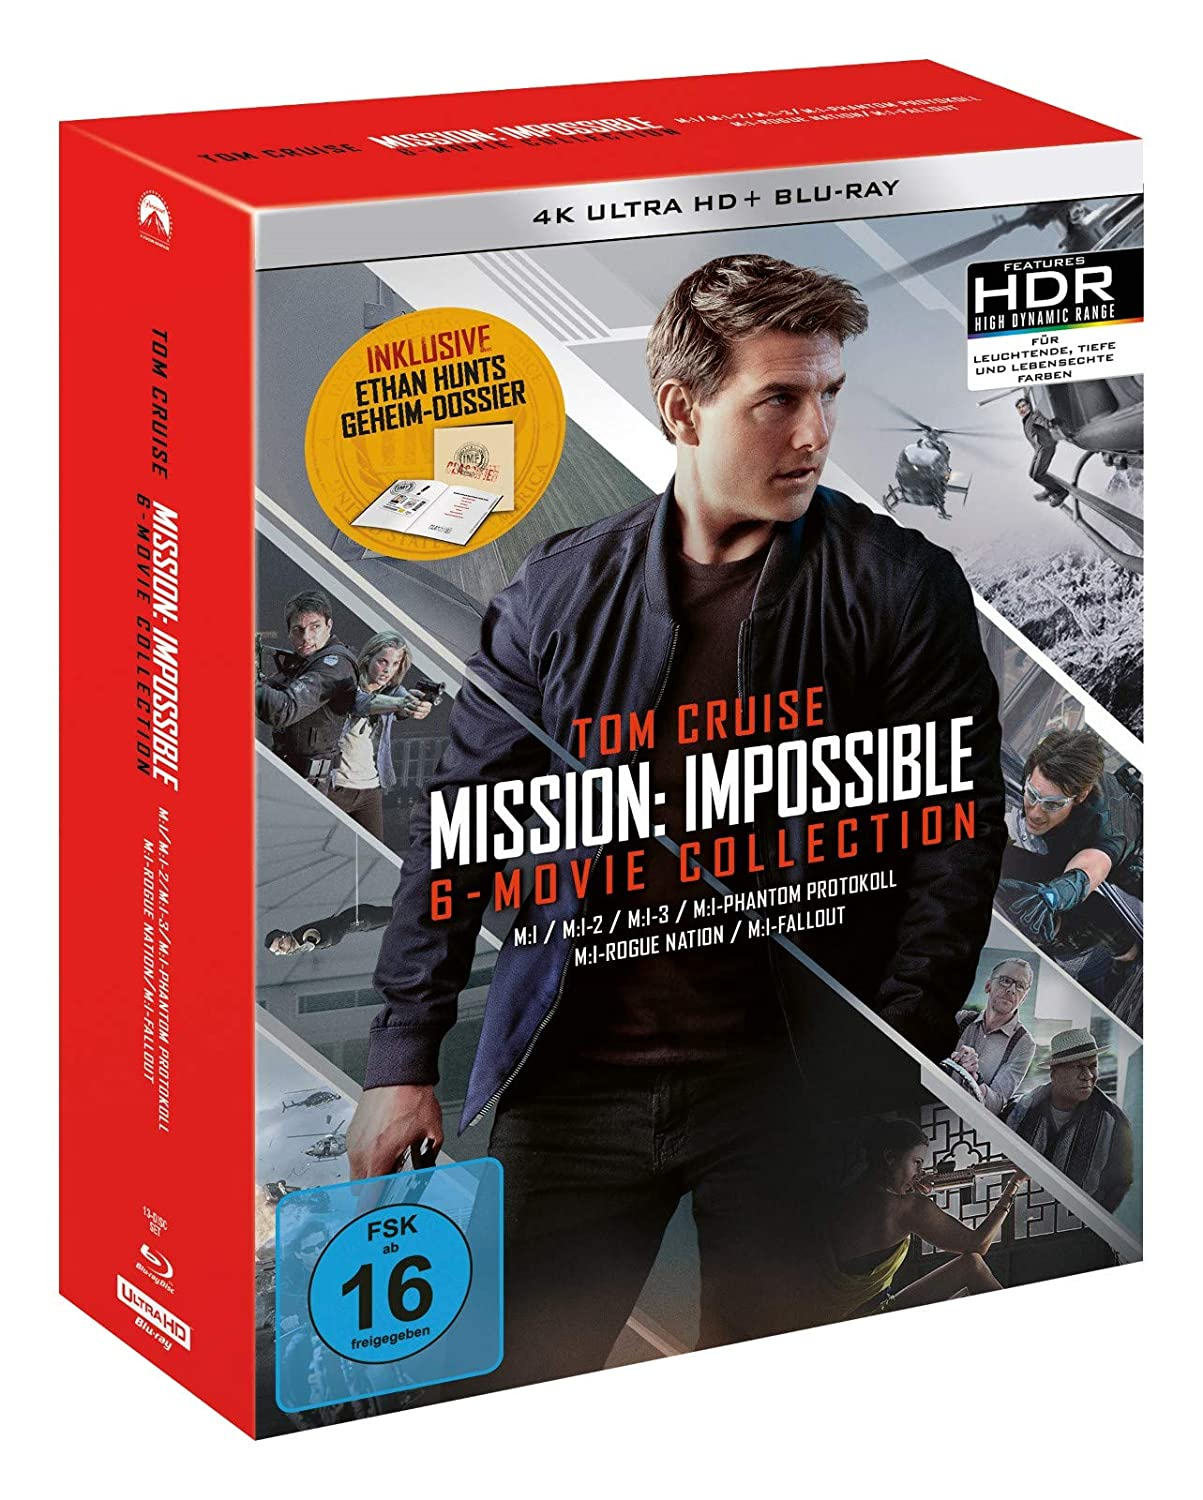 Mission: Impossible The 6 Movie Collection (Limited Boxset) - 4K Blu-ray (UHD + Blu-ray Disc)